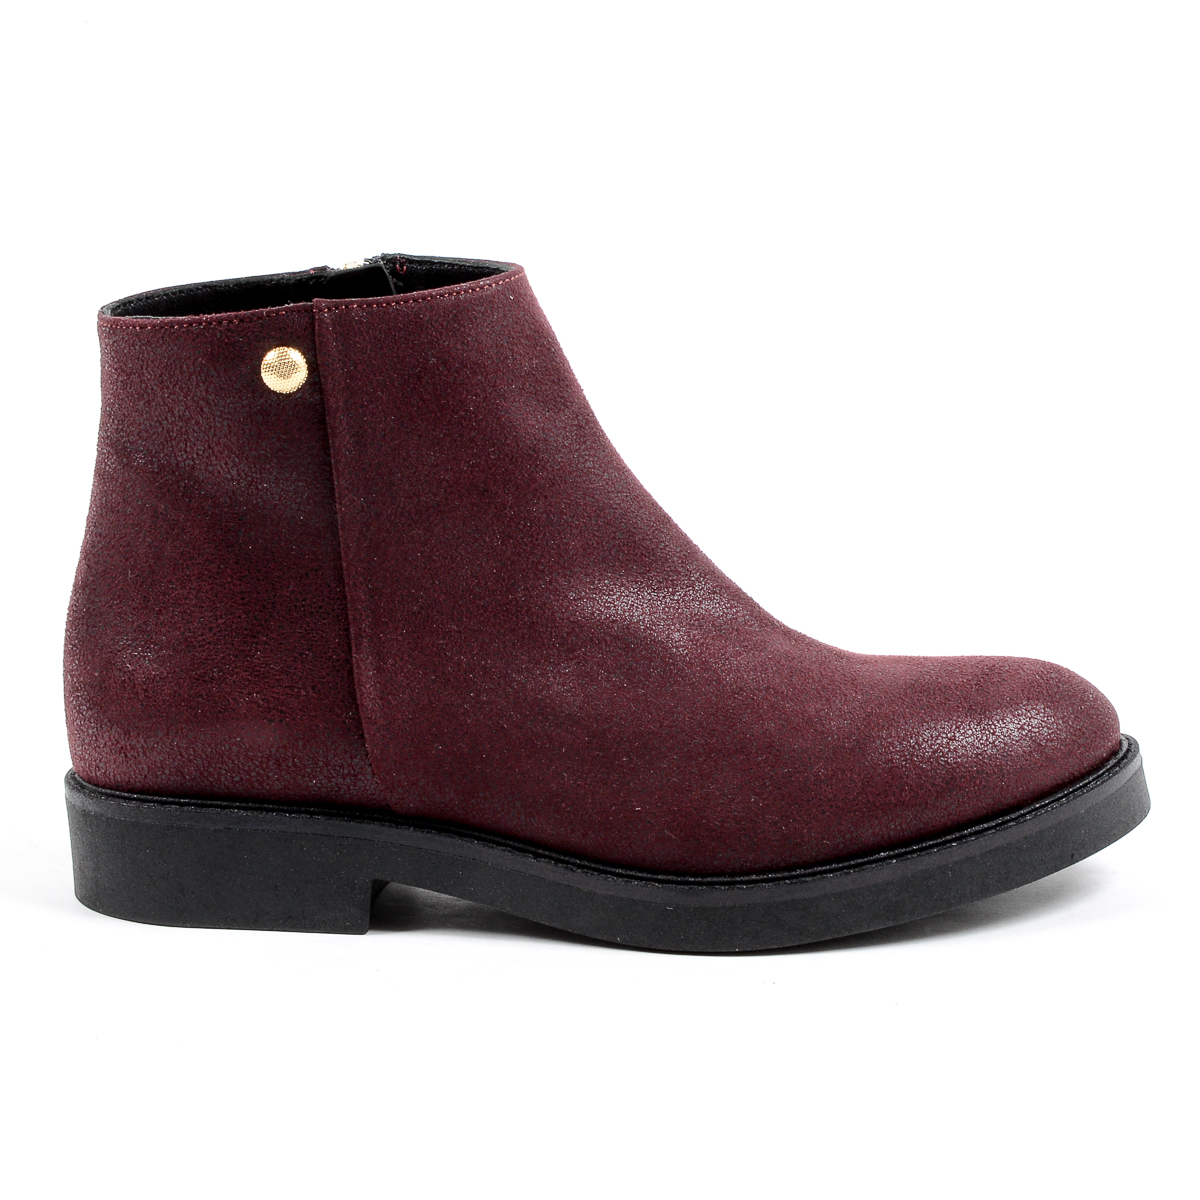 Primary image for V 1969 Italia Womens Ankle Boot Bordeaux TILLY